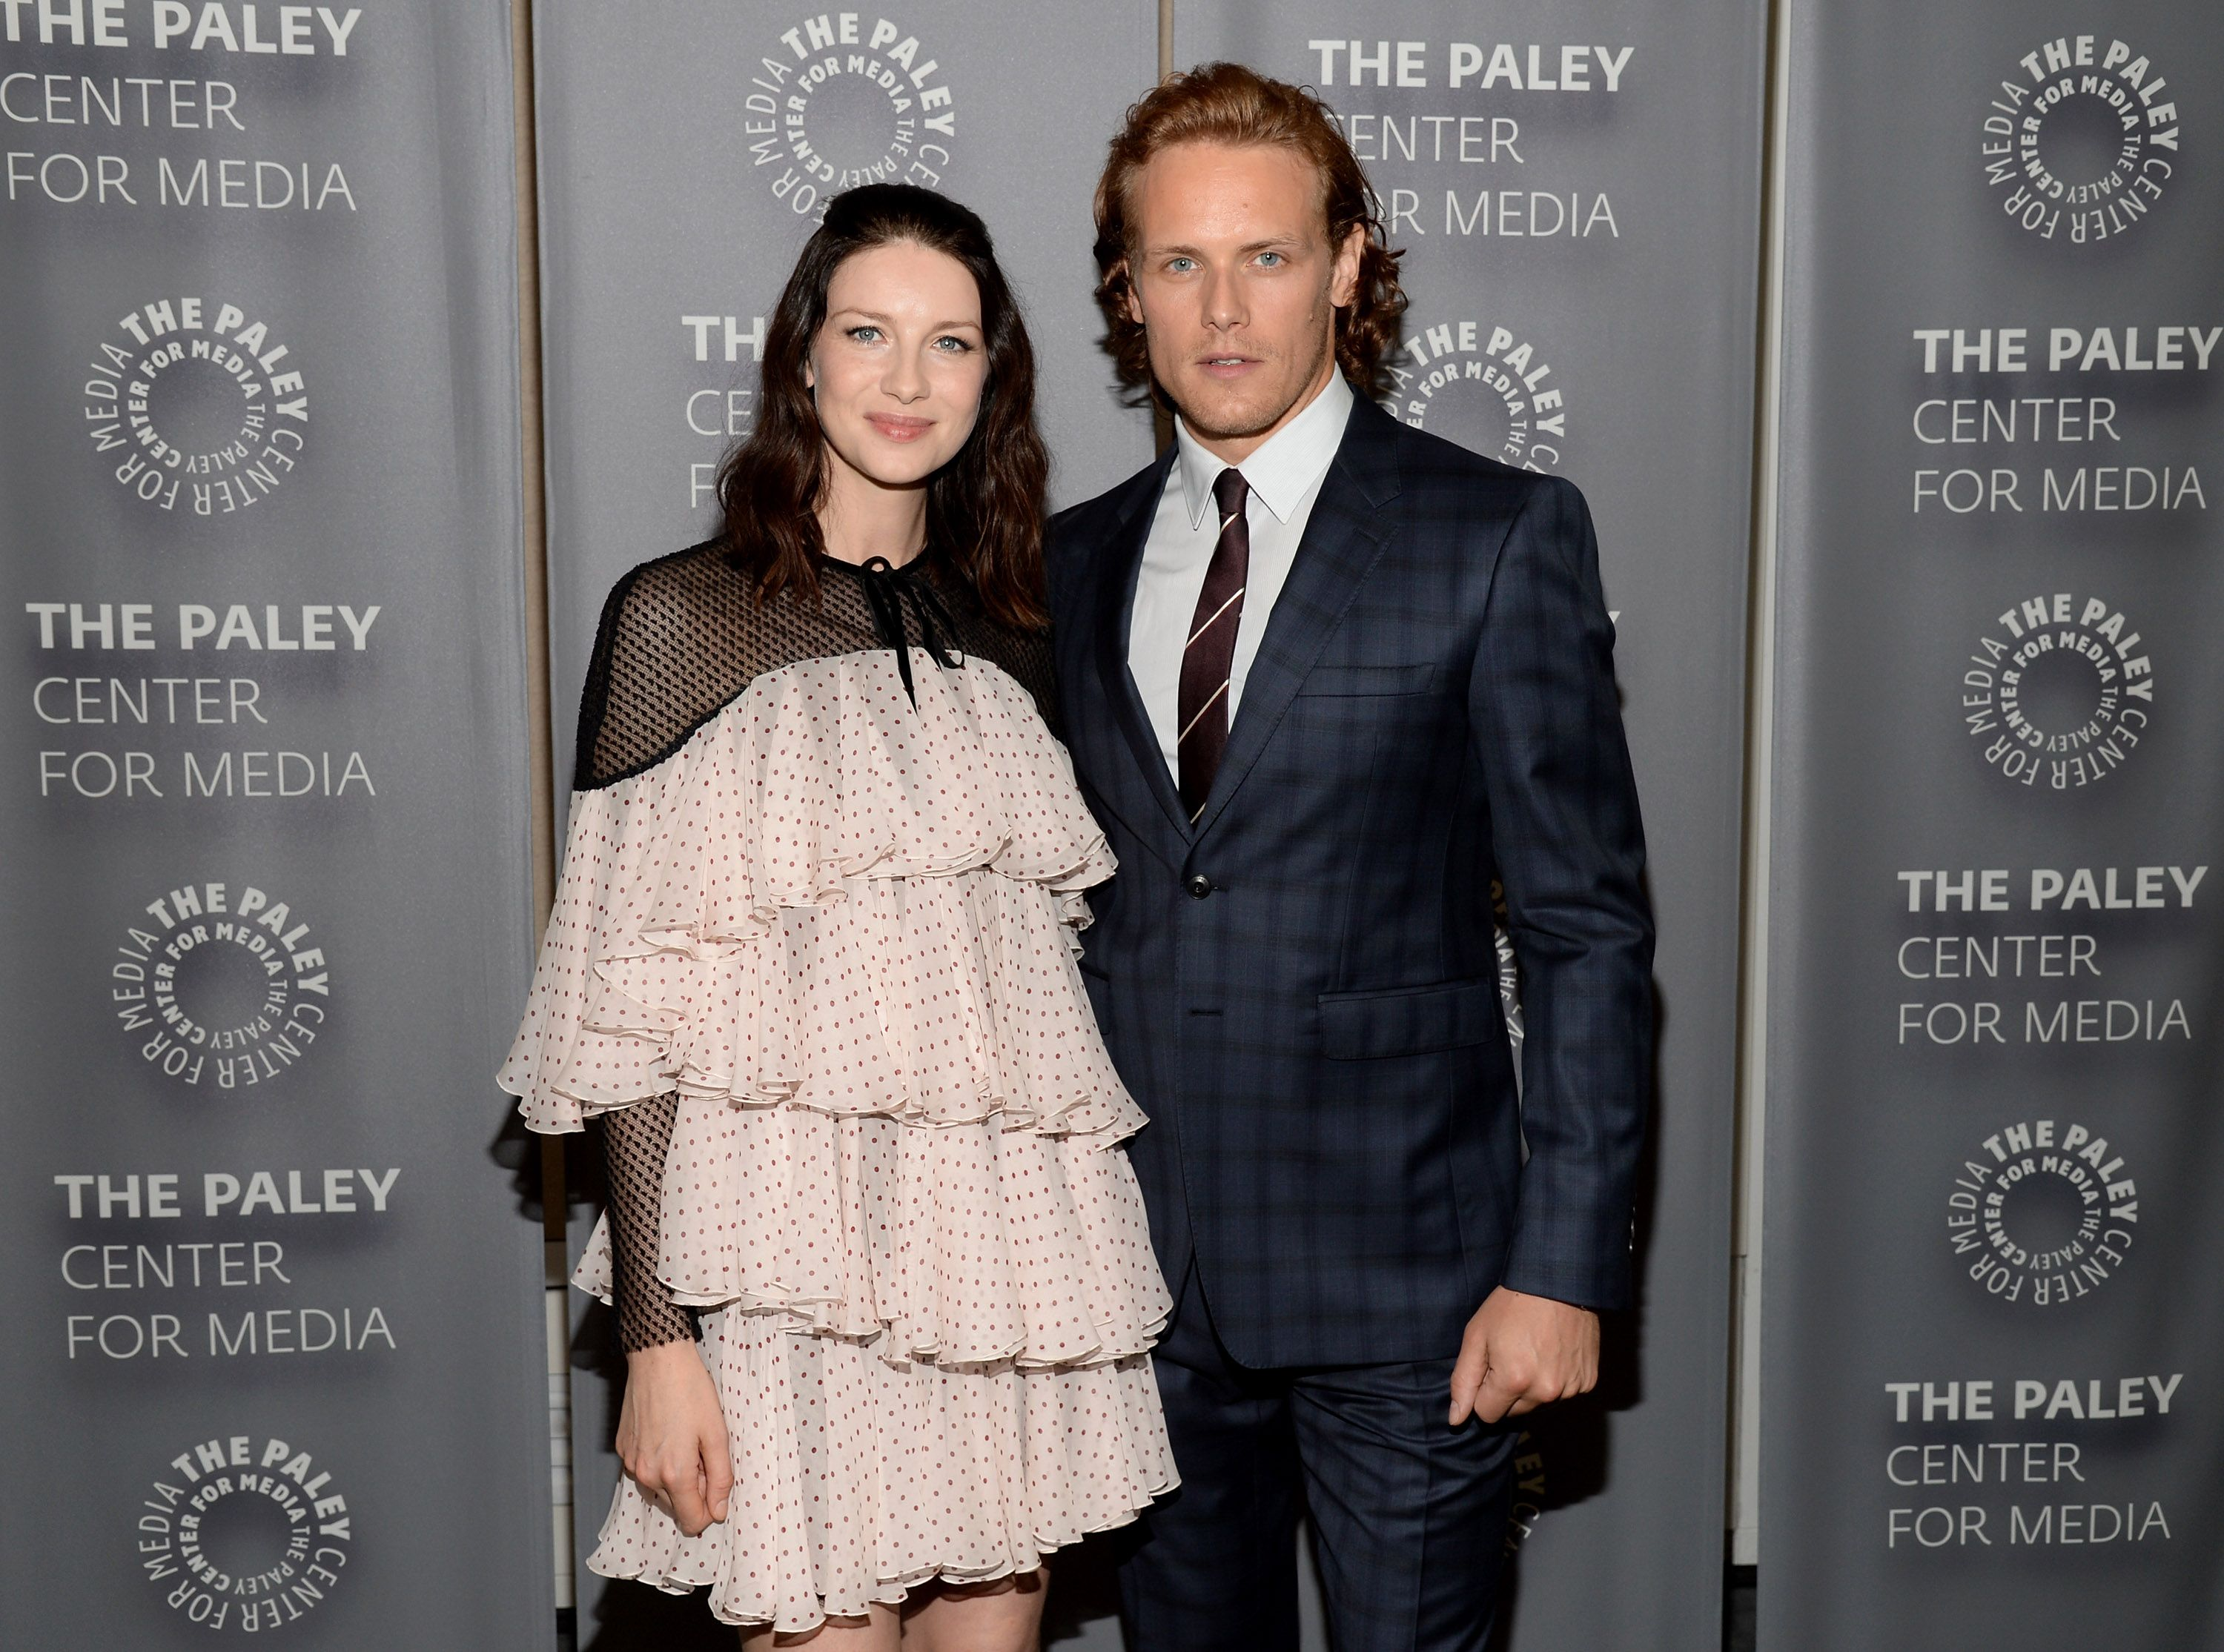 Caitriona Balfe and Sam Heughan / Getty Images